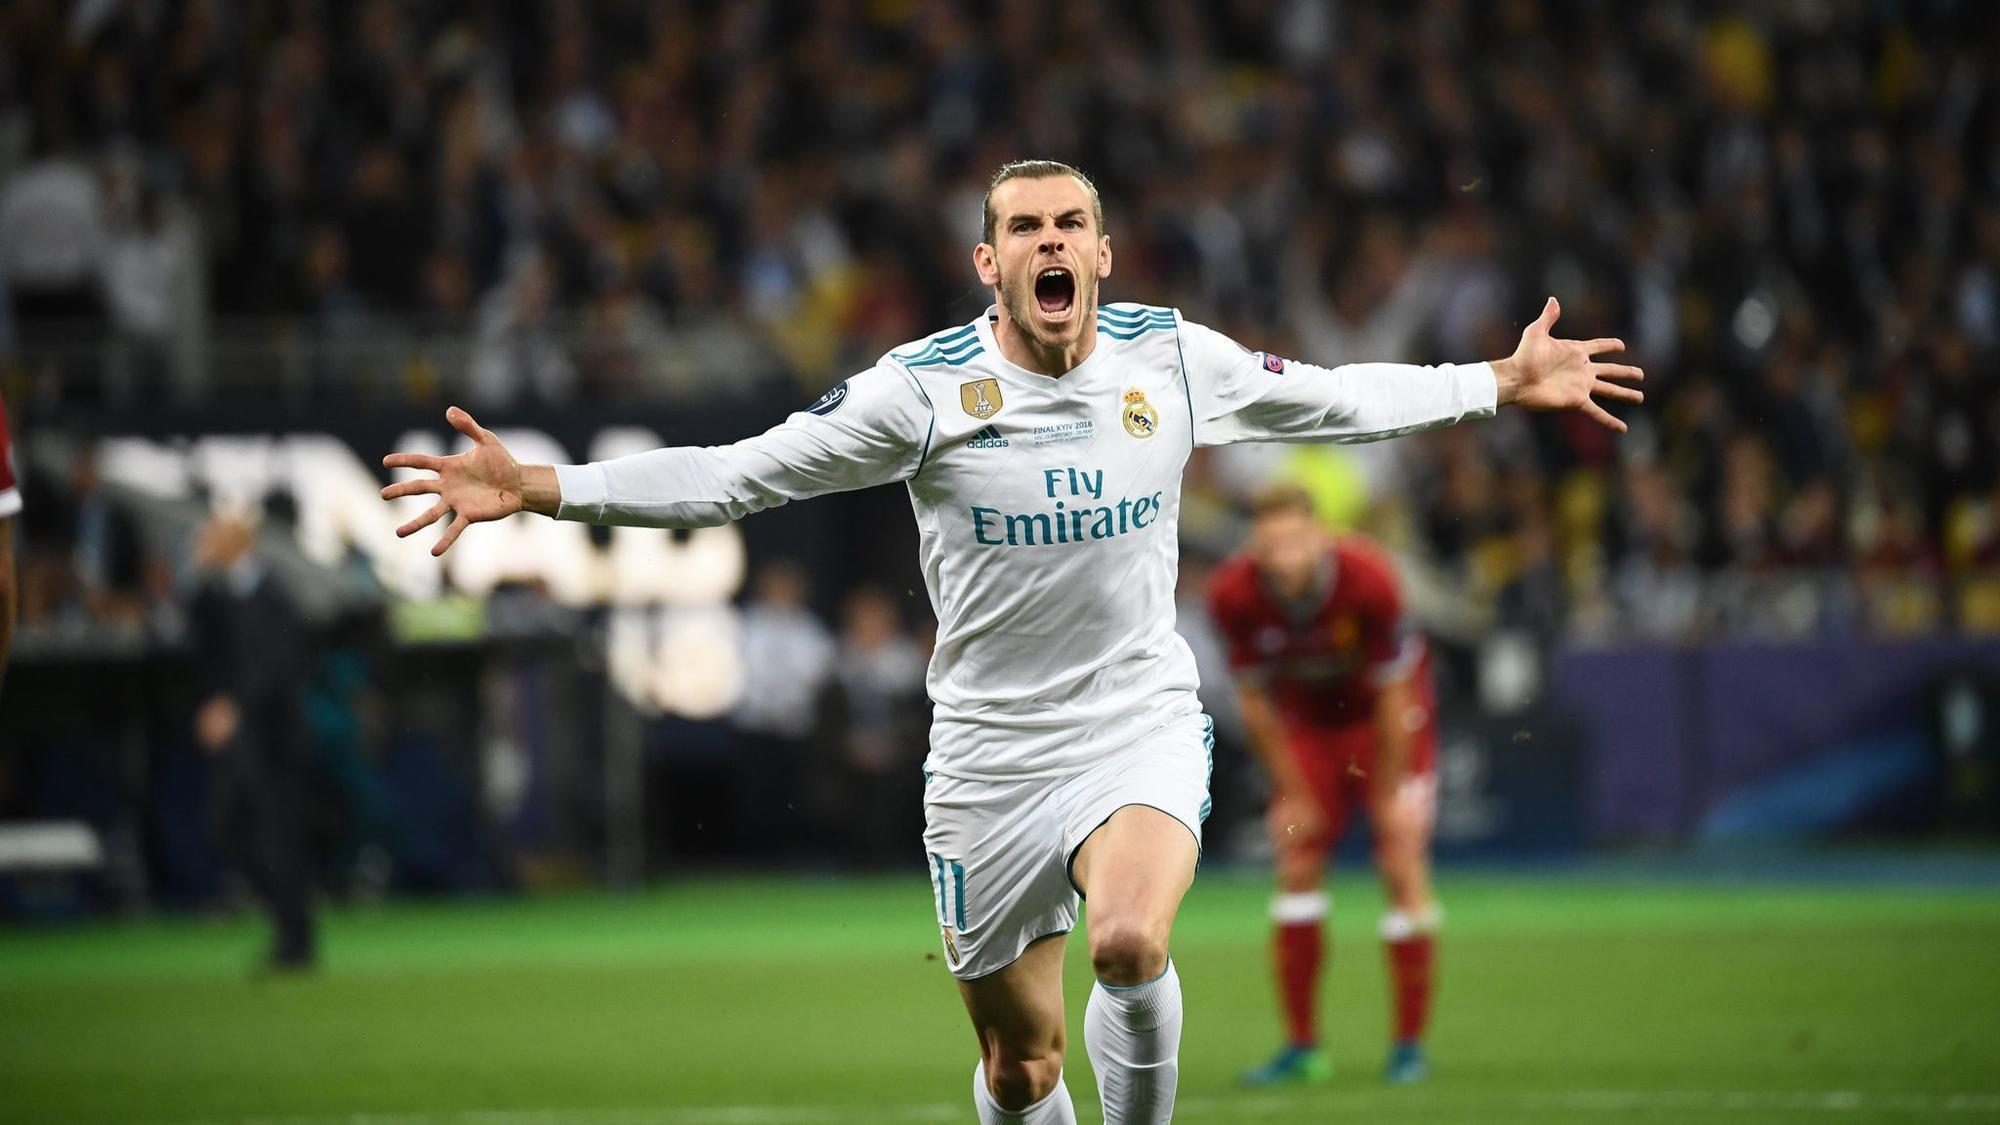 bcf18c662 The latest from Kiev  Bale scores his second